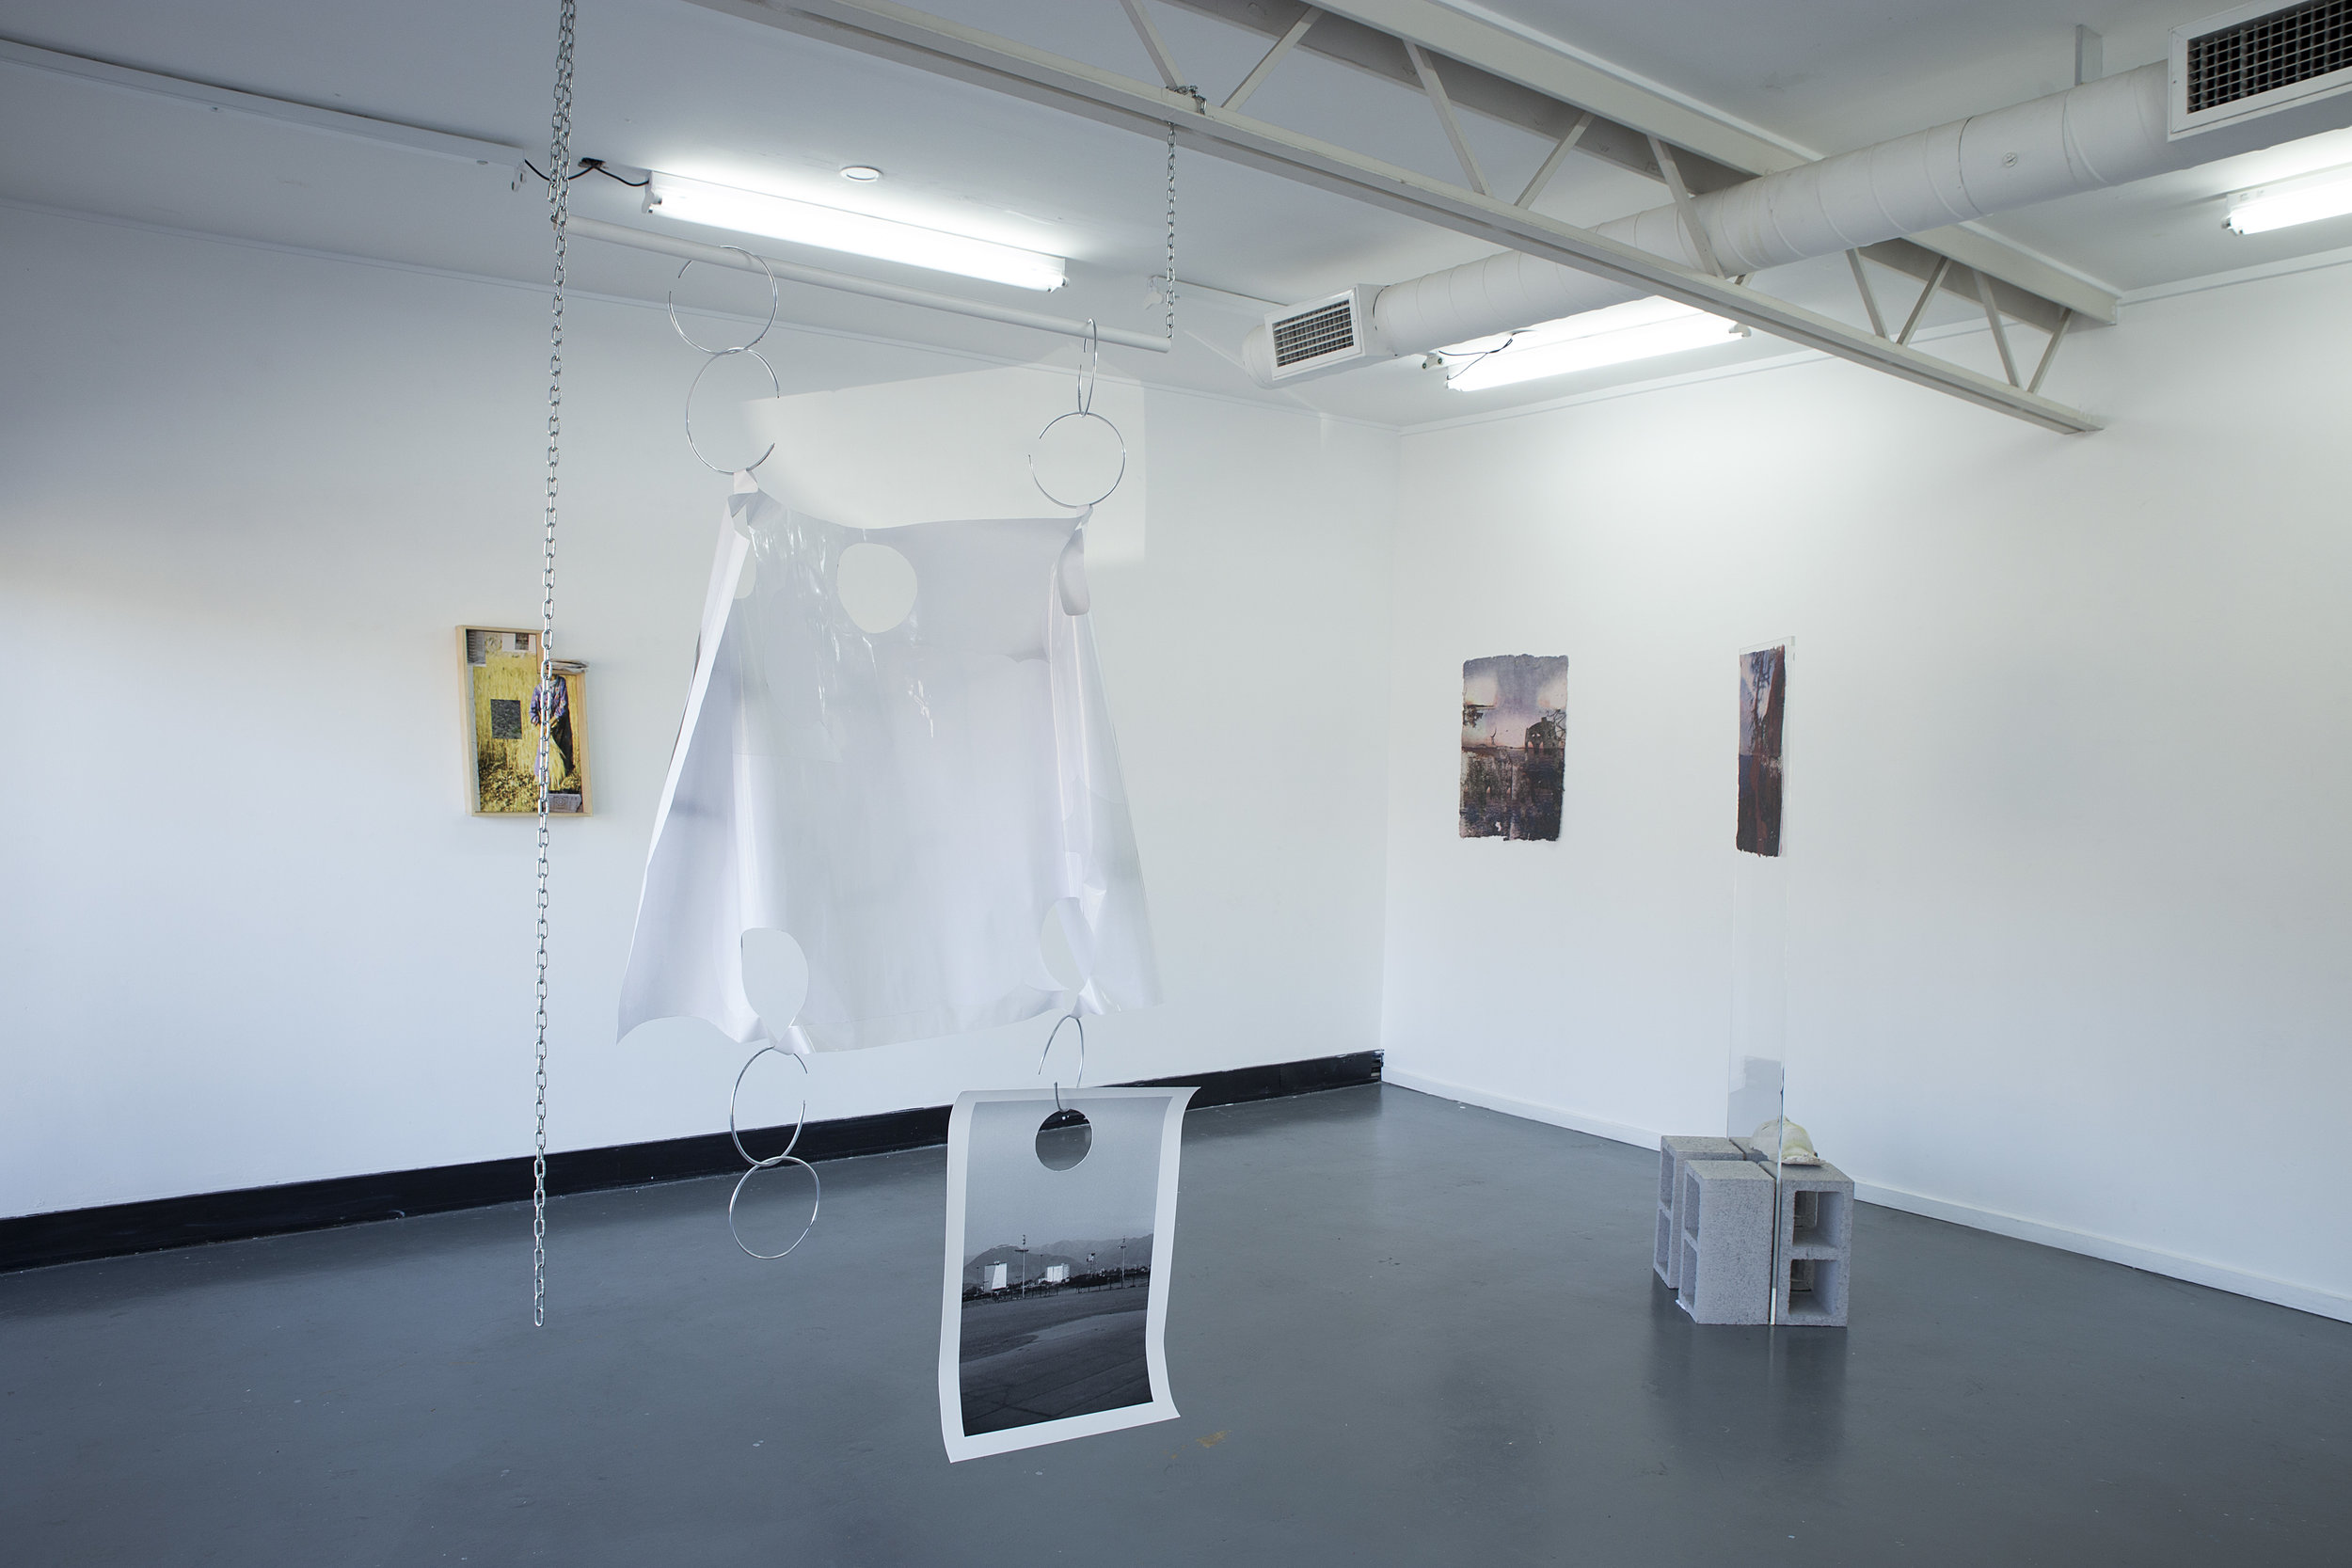 EXO at Tributary Projects curated by Seb Henry-Jones  9th-22nd of July, 2018  with Mark Mailler, Hannah Buckman, Drew Connor Holland and Aston Creus  Documentation by Esther Carlin